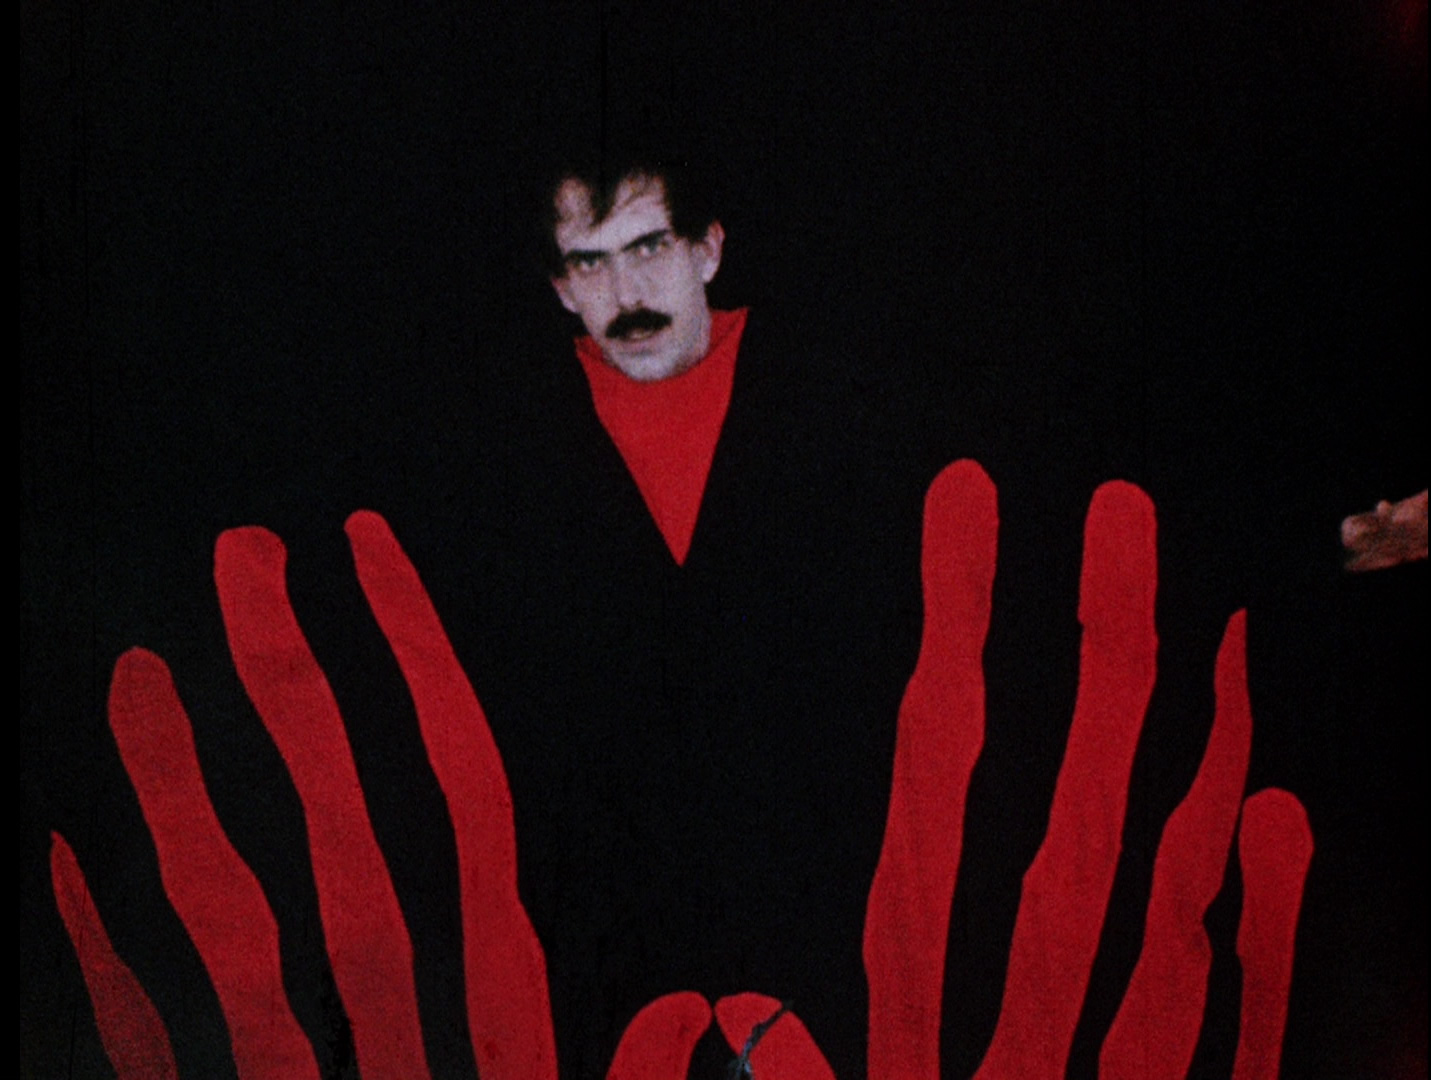 The Master (Tom Neyman) resurrected from the dead in Manos: The Hands of Fate (1966)